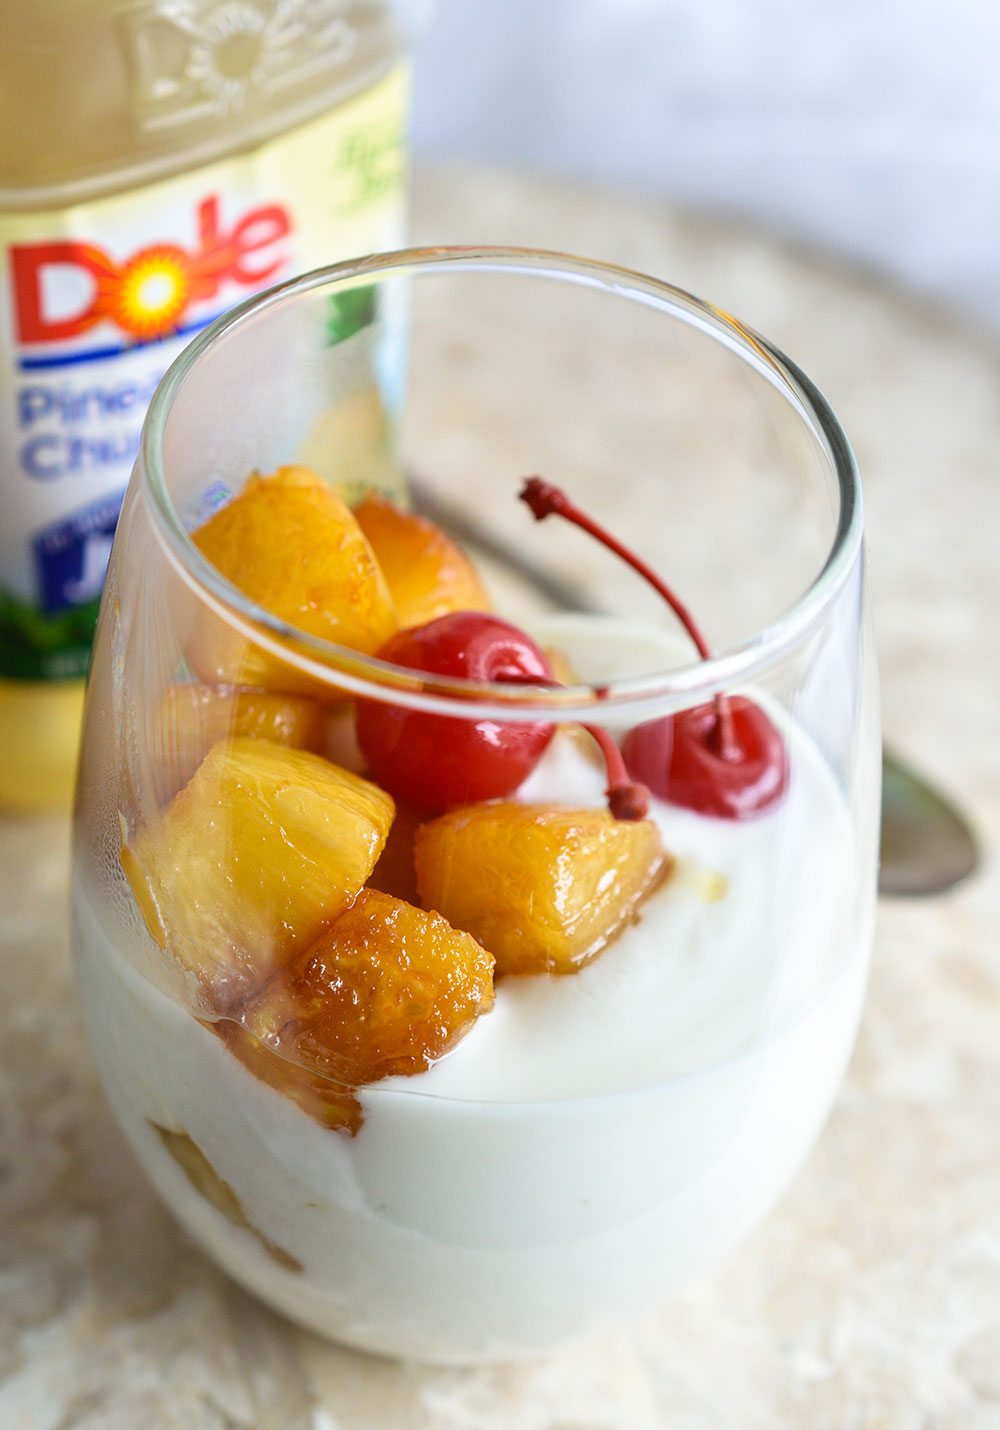 Make a Pineapple Upside Down Yogurt Parfait for a quick and flavorful snack or dessert! This sweet treat is less than 500 calories and comes together in 10 minutes or less!